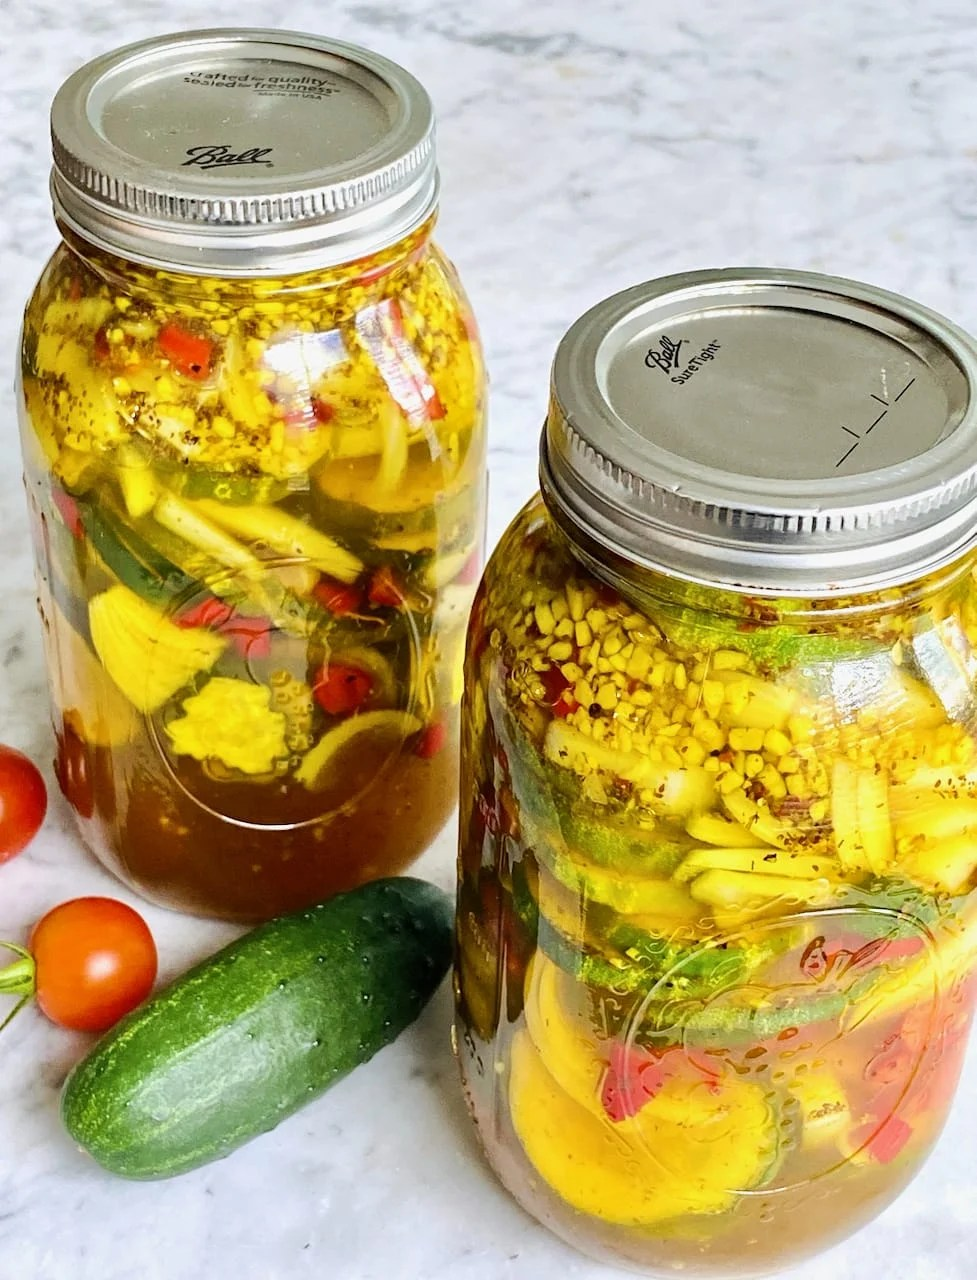 two jars of bread and butter pickles with lids and seals